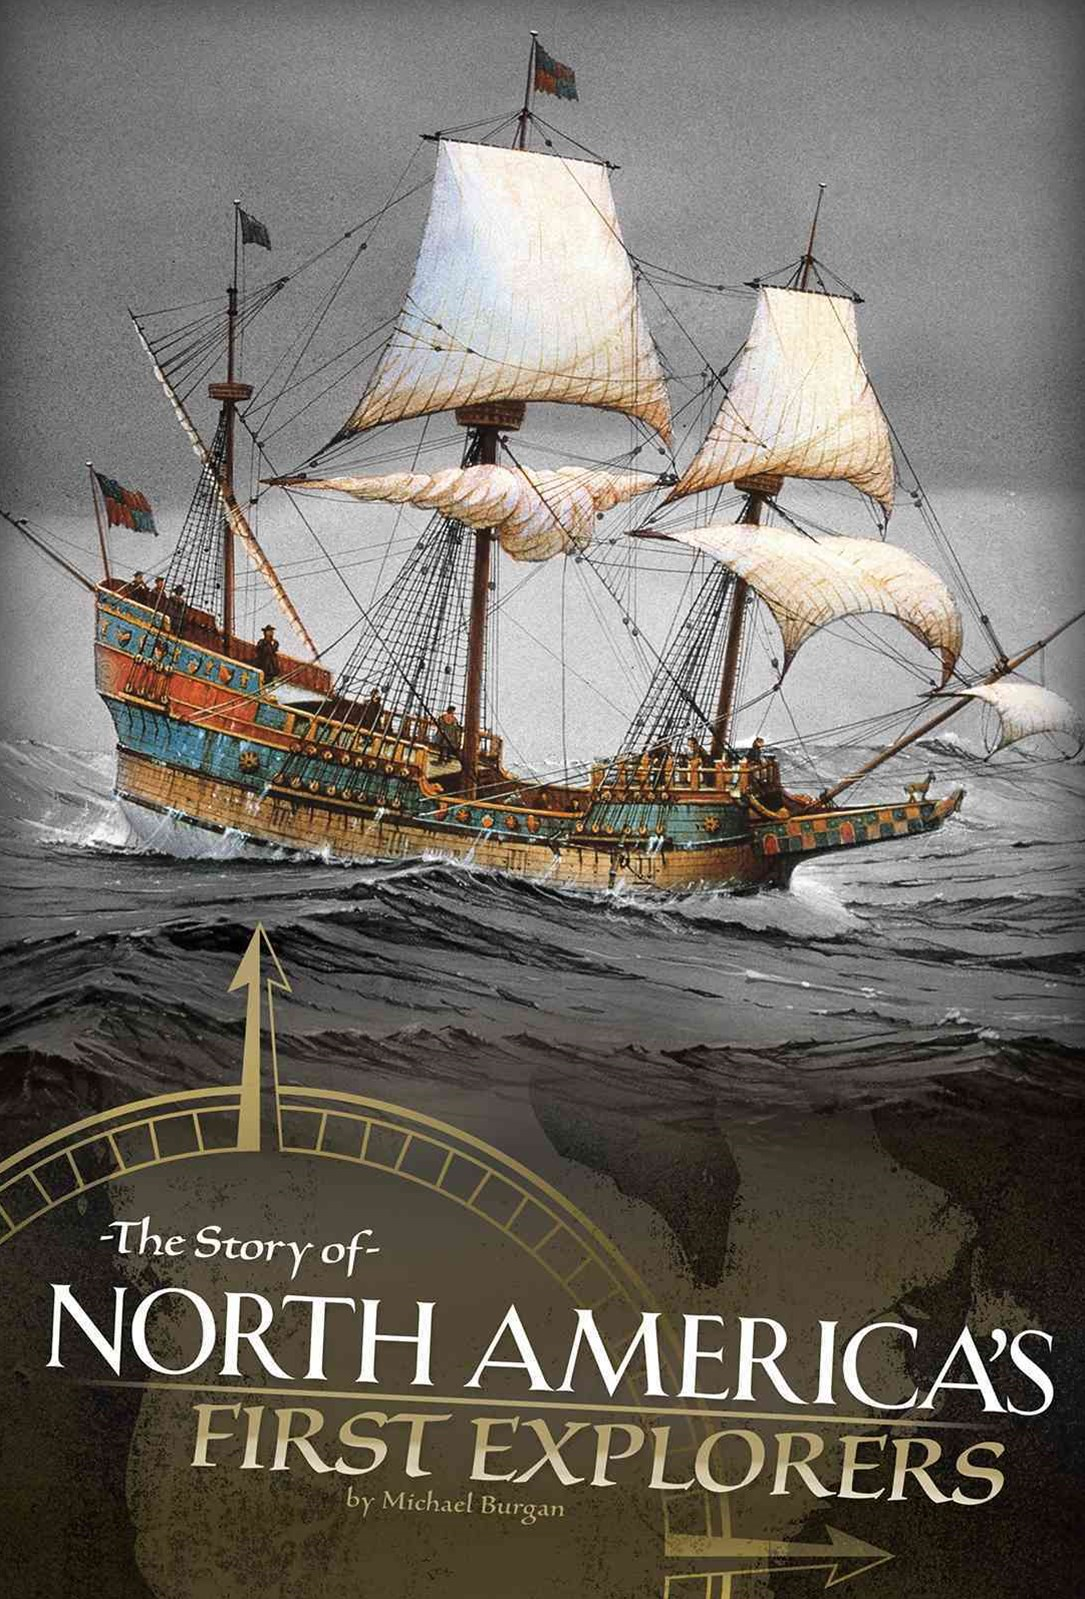 New World Explorers - The Story of North American's First Explorers